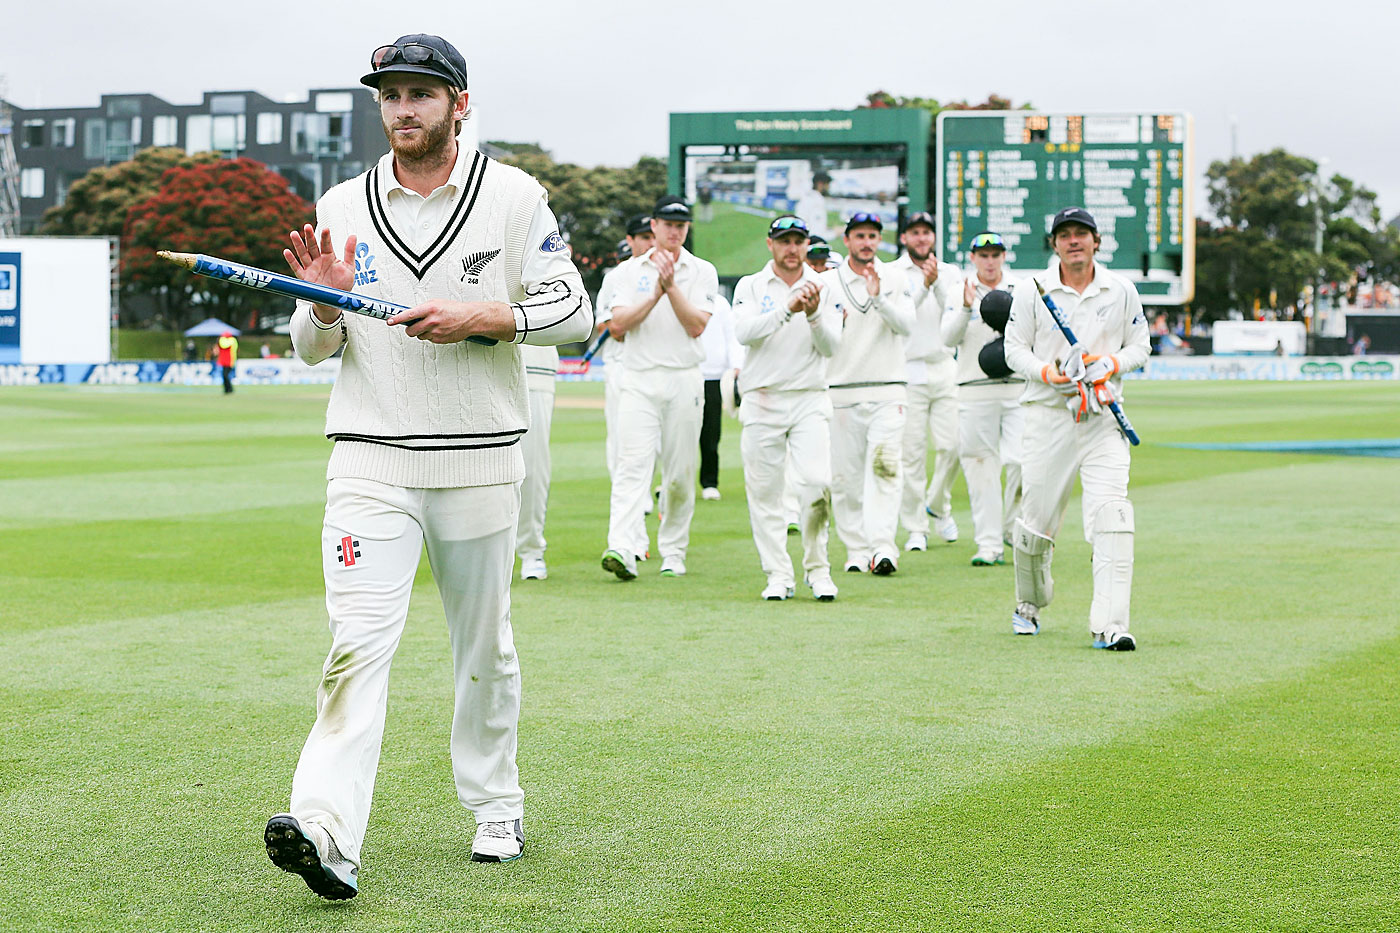 Made to lead: there's little doubt Williamson will captain New Zealand sooner rather than later